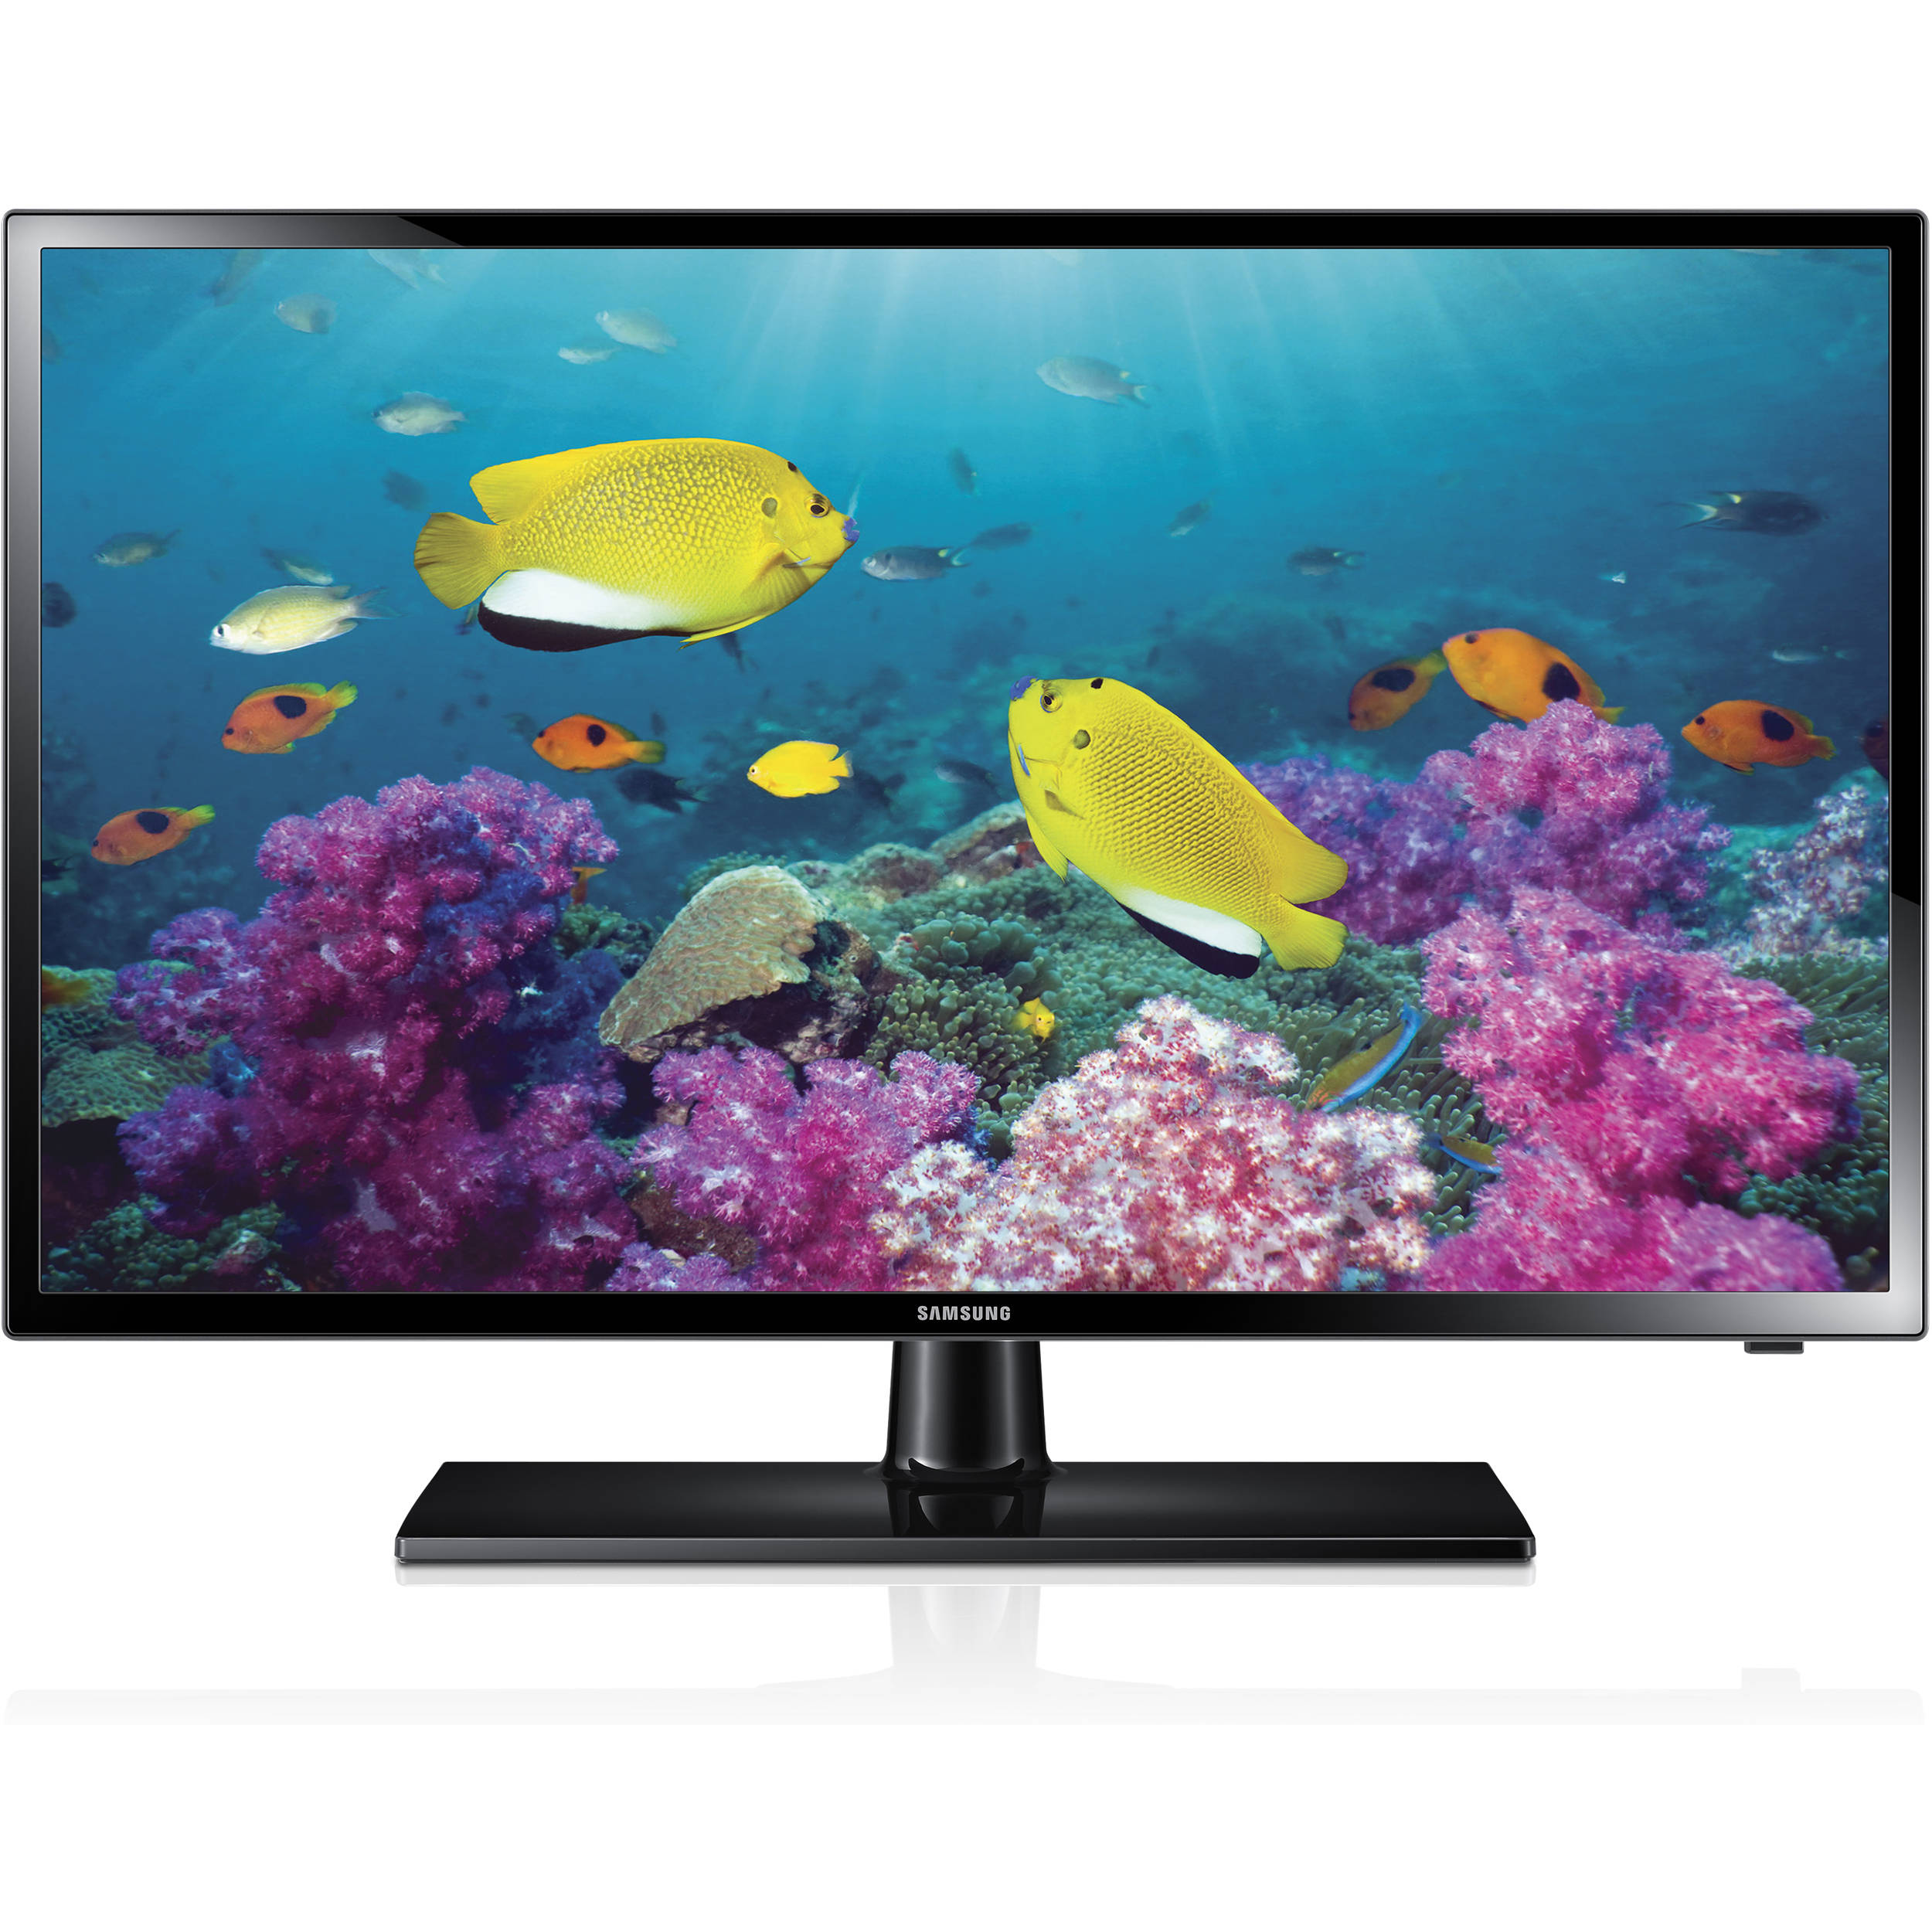 "Samsung 19"" 4000 Series LED TV UN19F4000BFXZA B&H Photo"